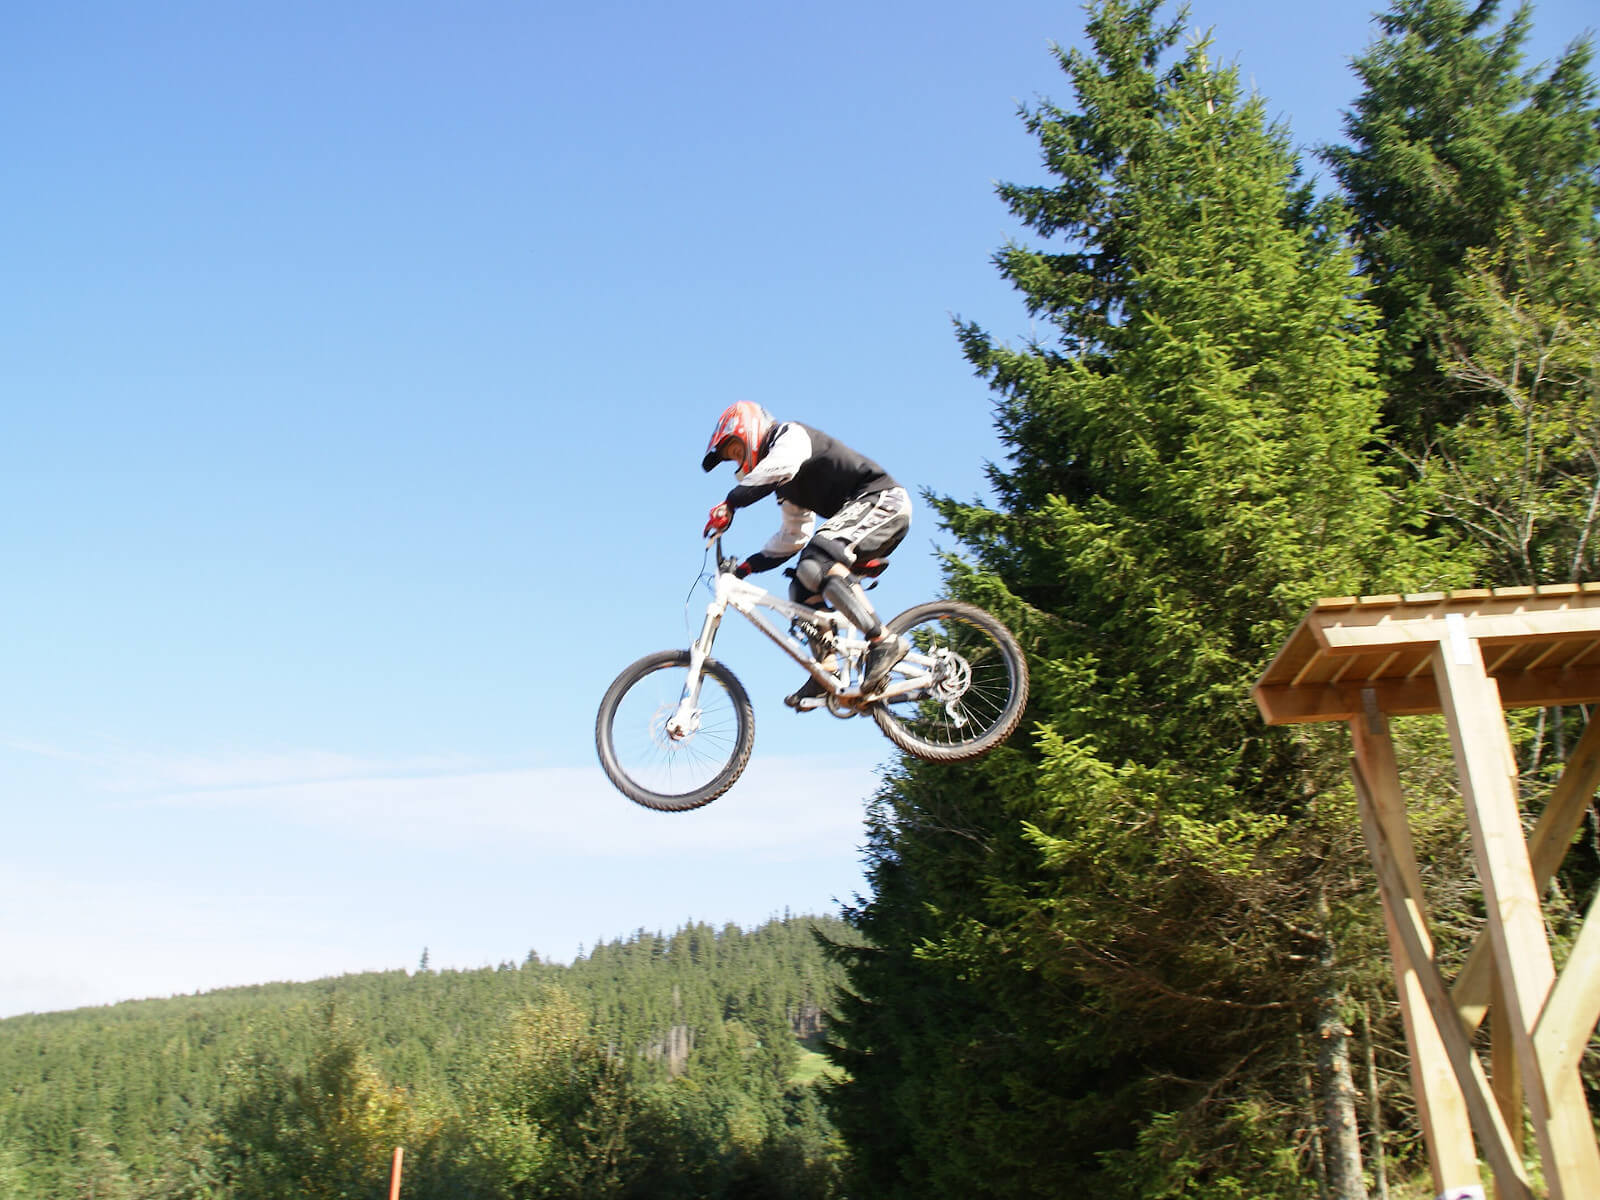 https://apps.tourisme-alsace.info/photos/kaysersberg/photos/stage-de-vtt-descente-freeride-niveau-2-bike-park-lac-blanc.jpg